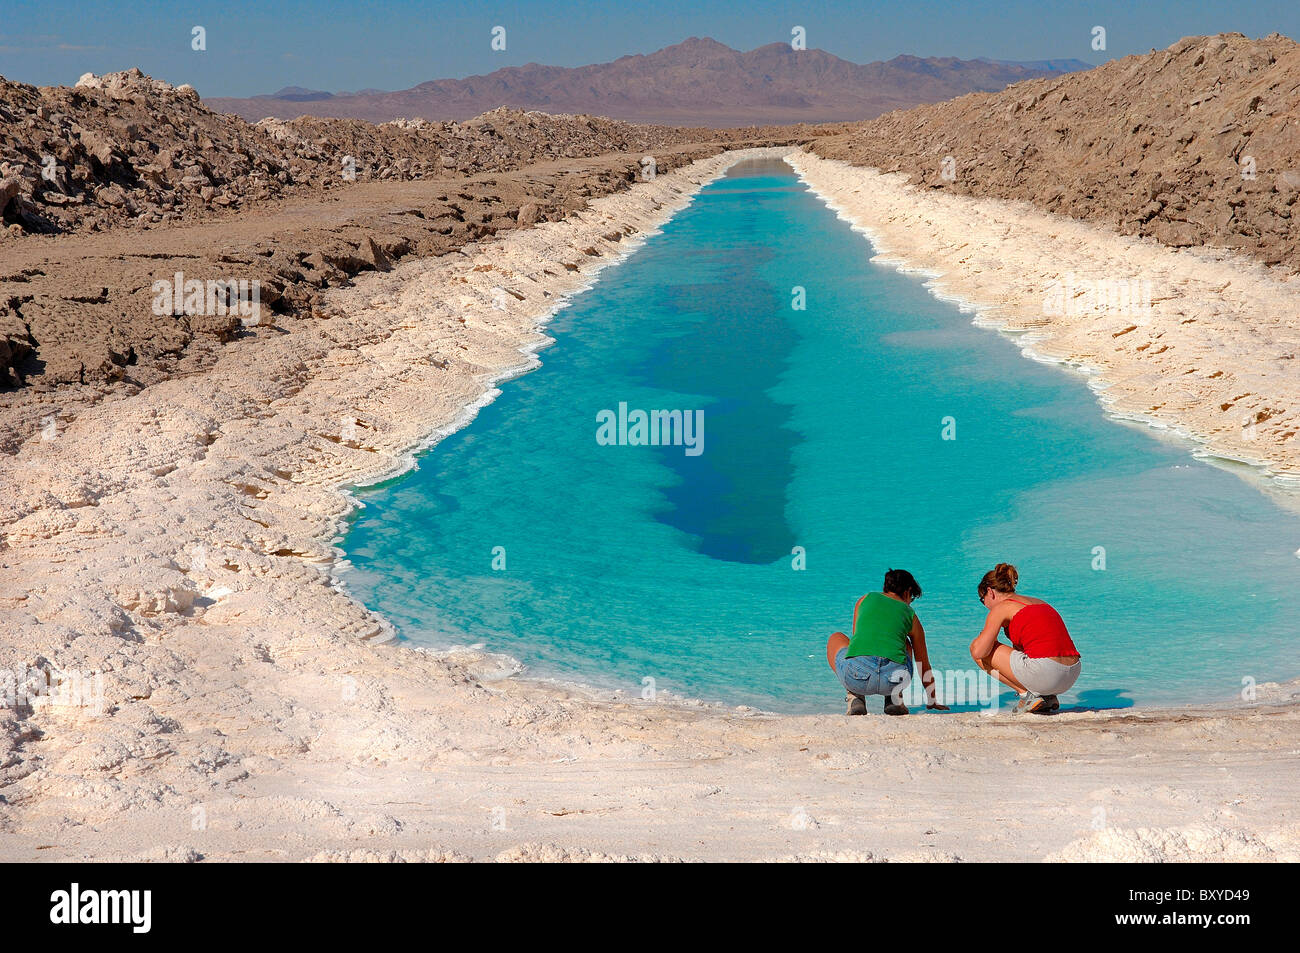 Chloride Fields outside of Amboy, Mojave Desert, California, USA - Stock Image